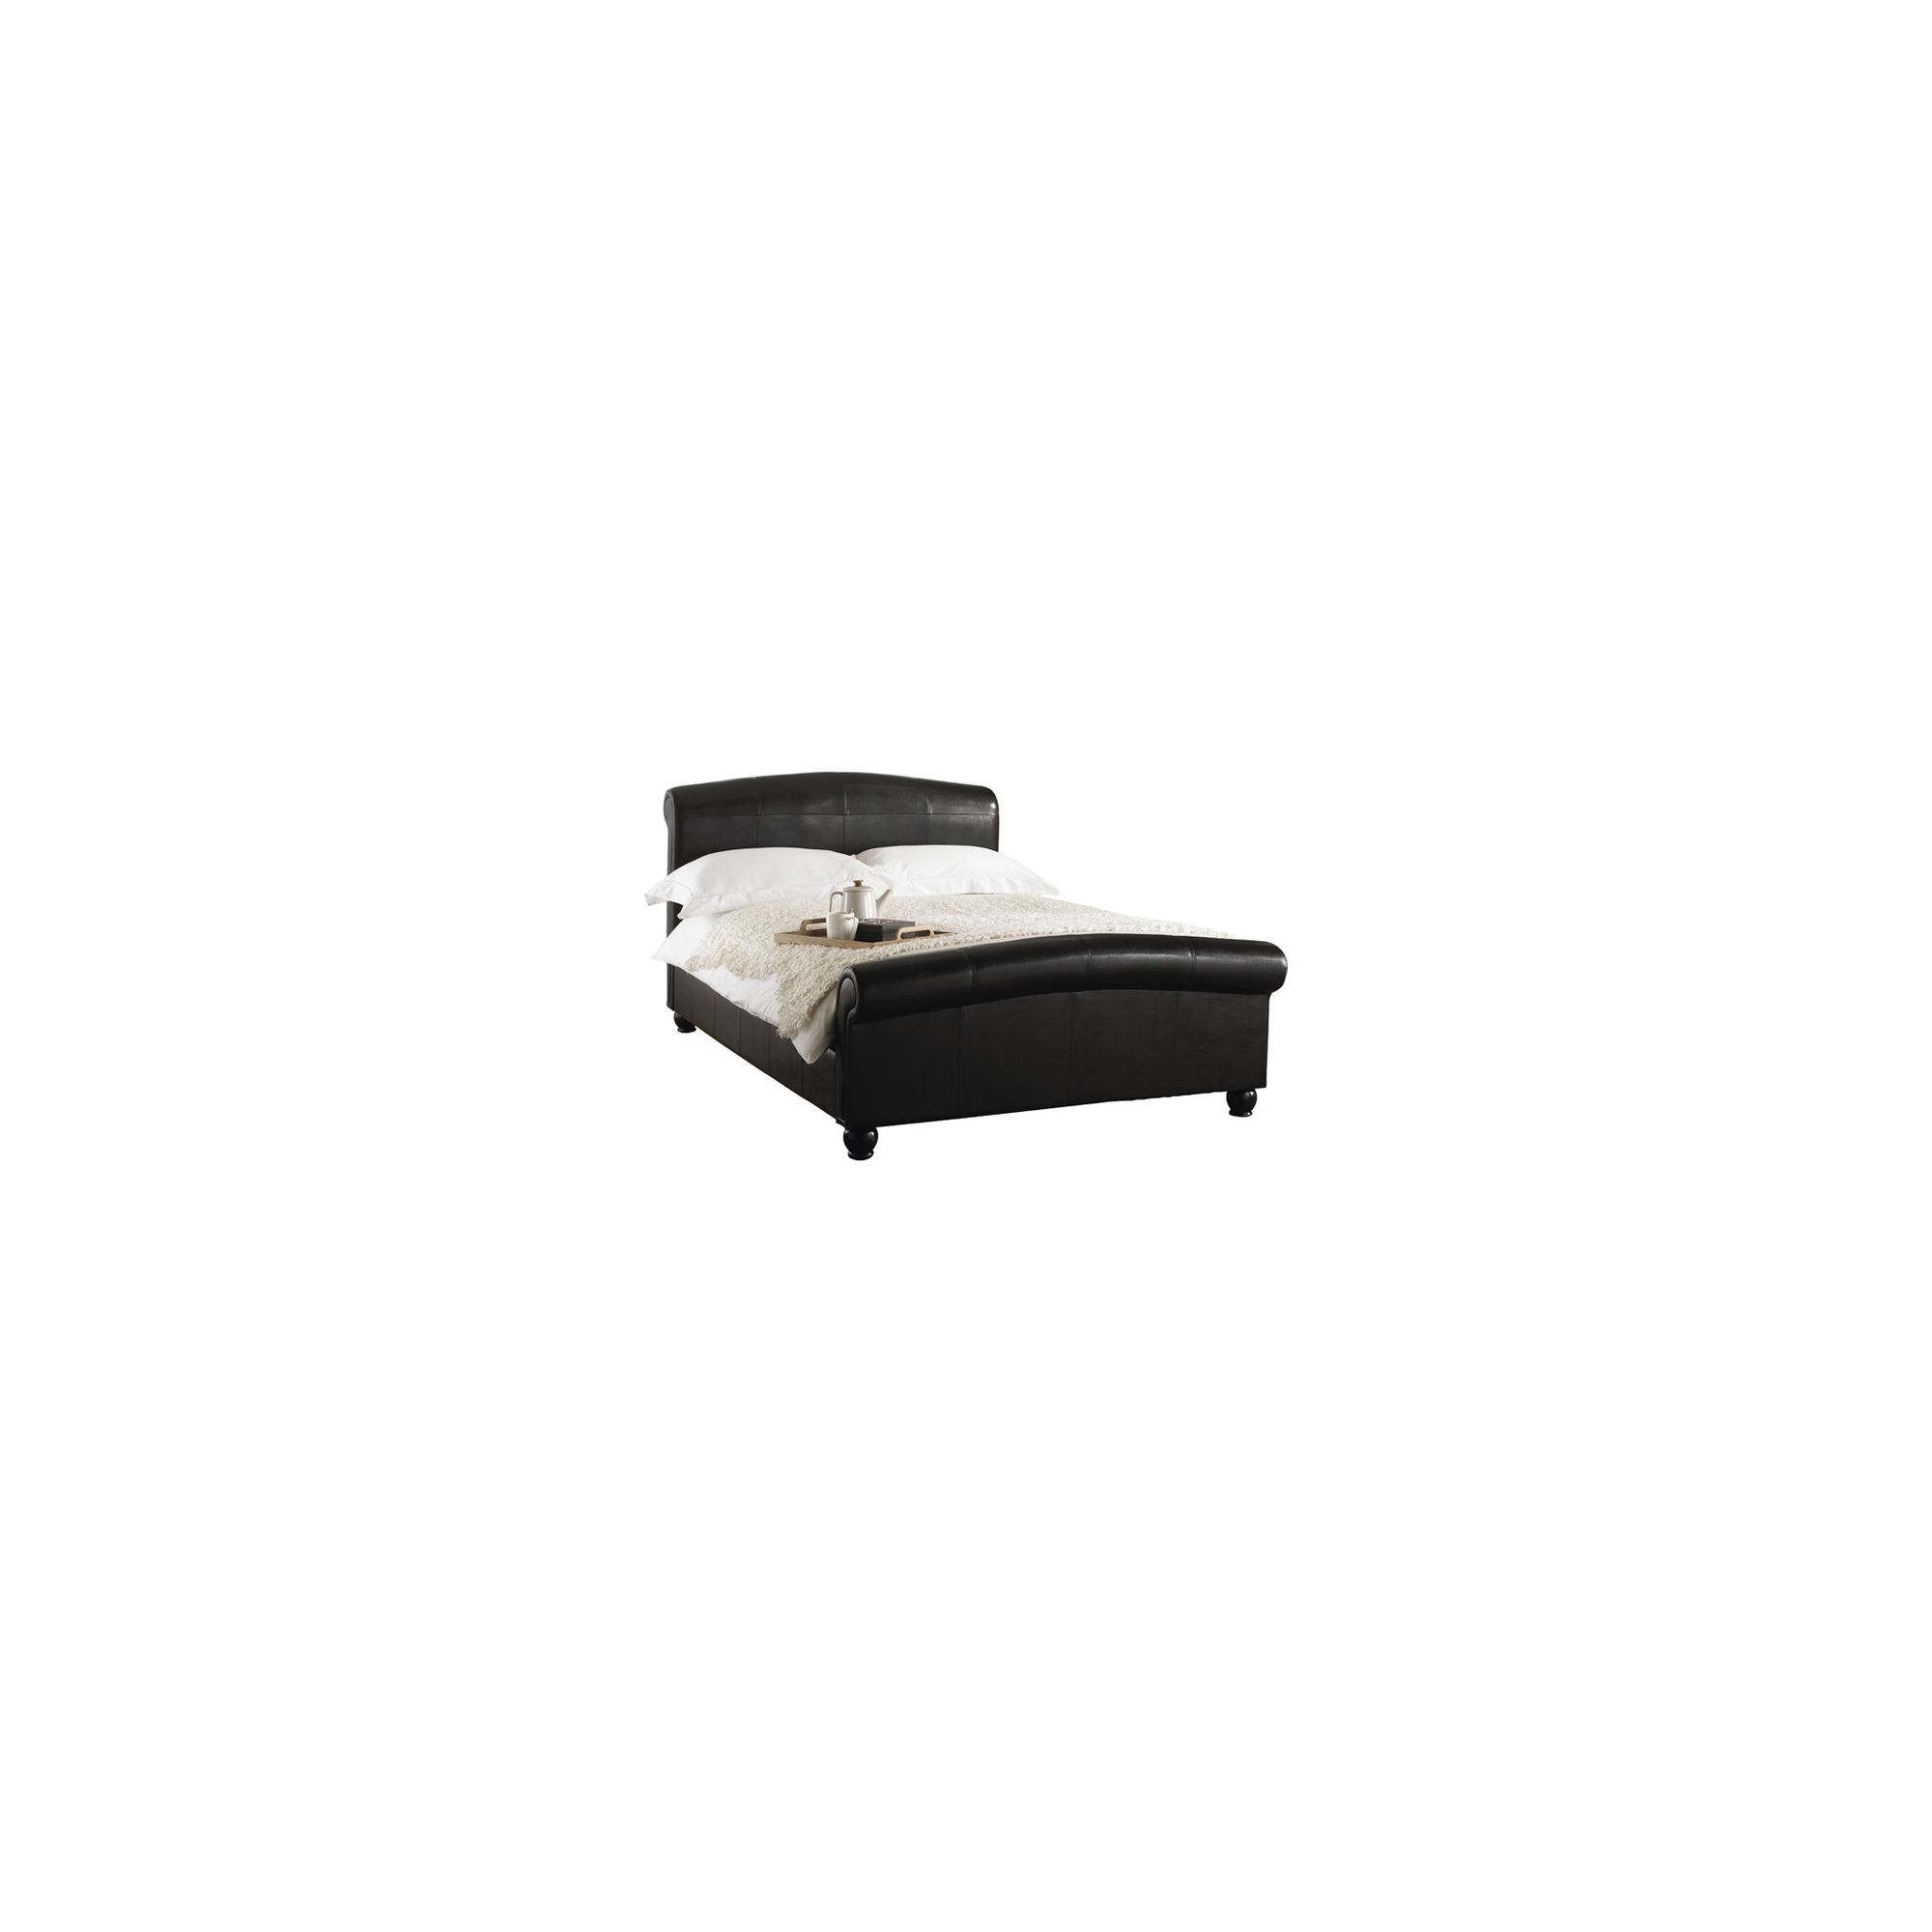 Hyder Knightsbridge Faux Leather Bed - Double at Tesco Direct